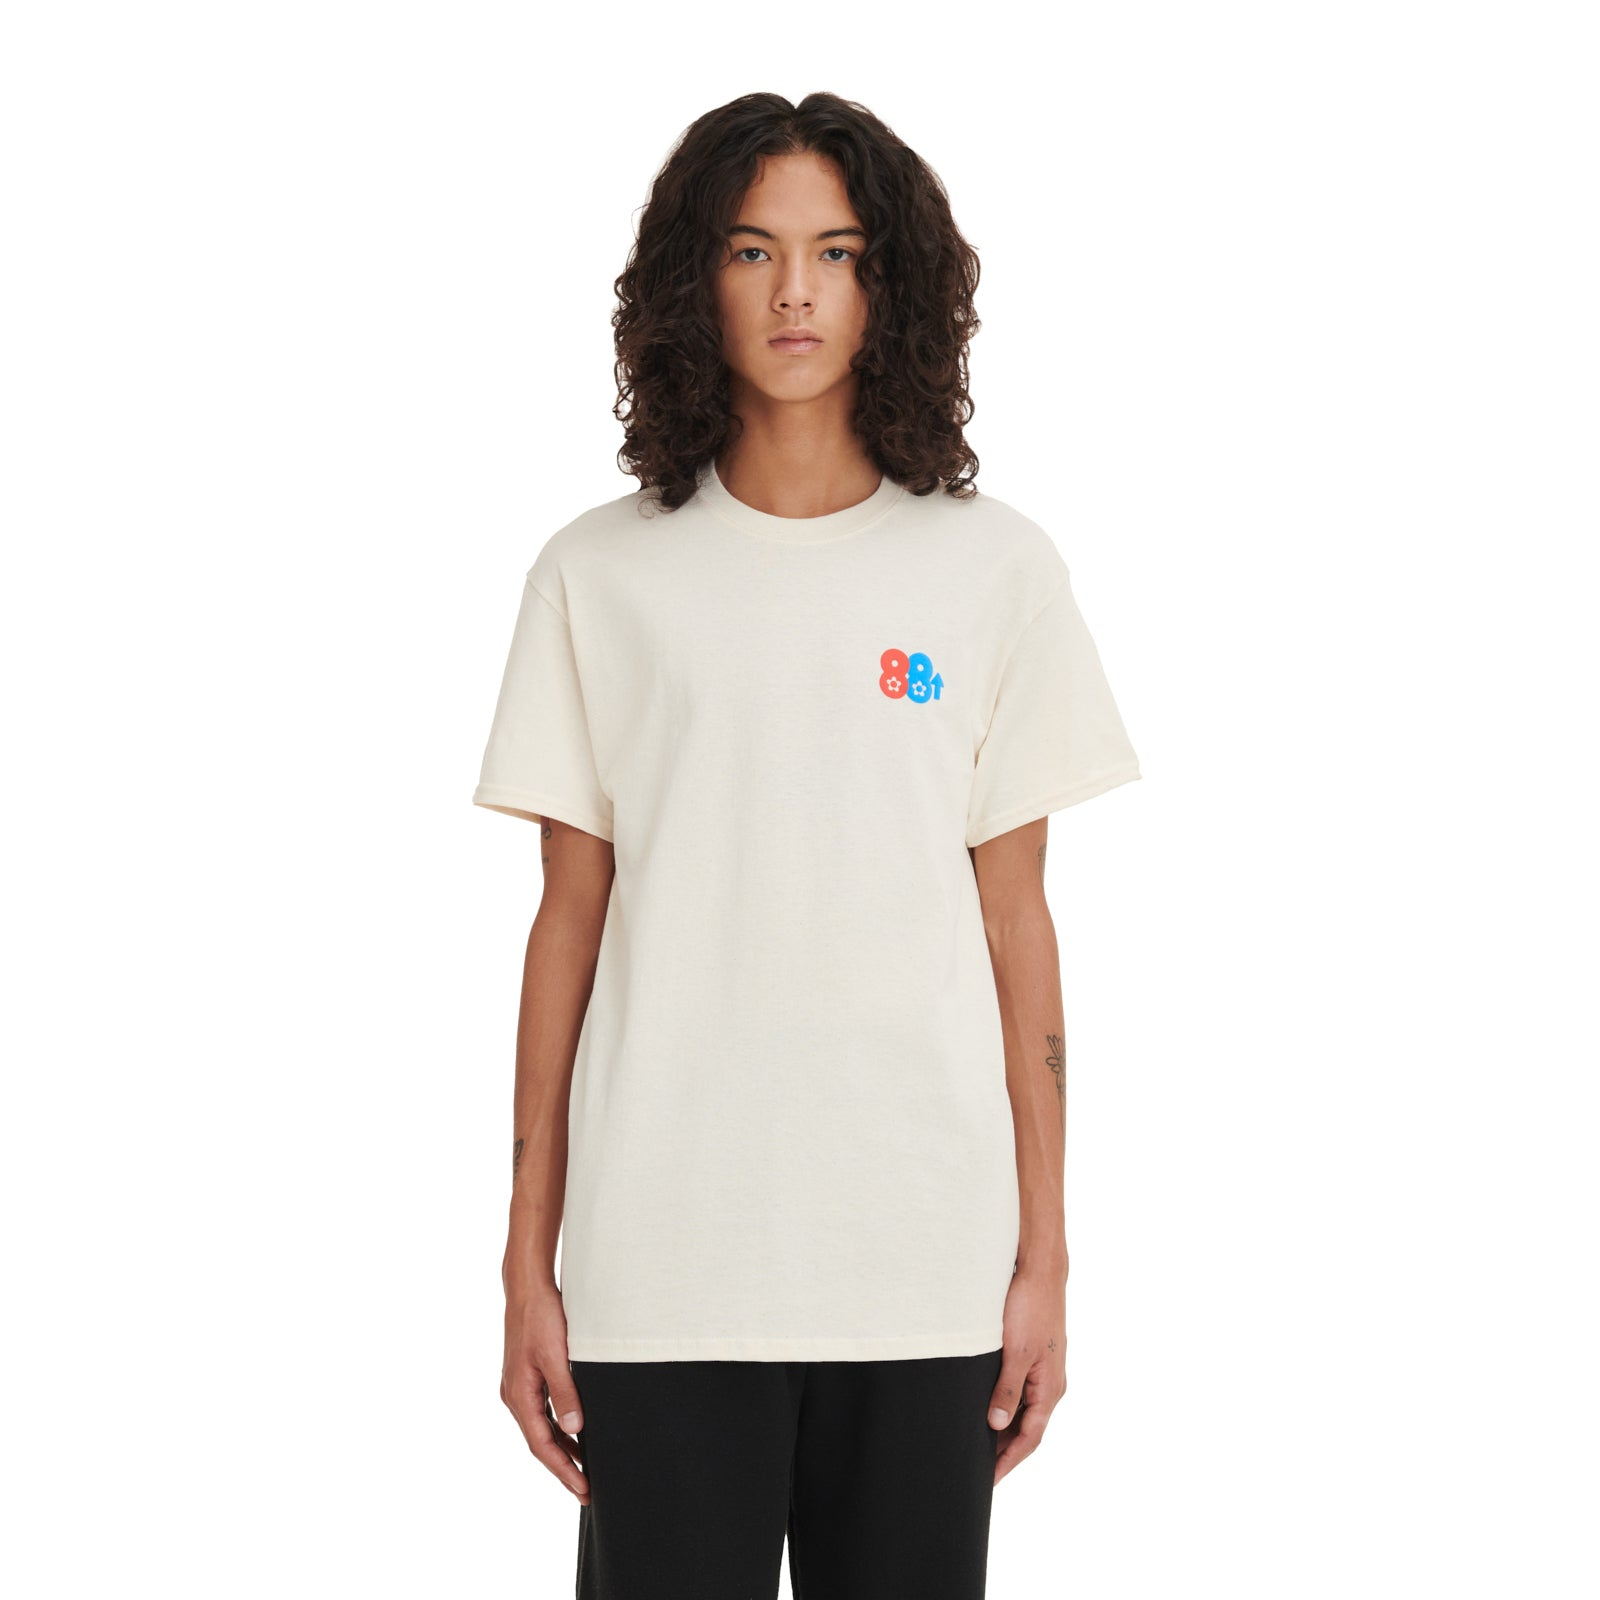 88Rising x Vandy Lucky Cat T-Shirt Natural